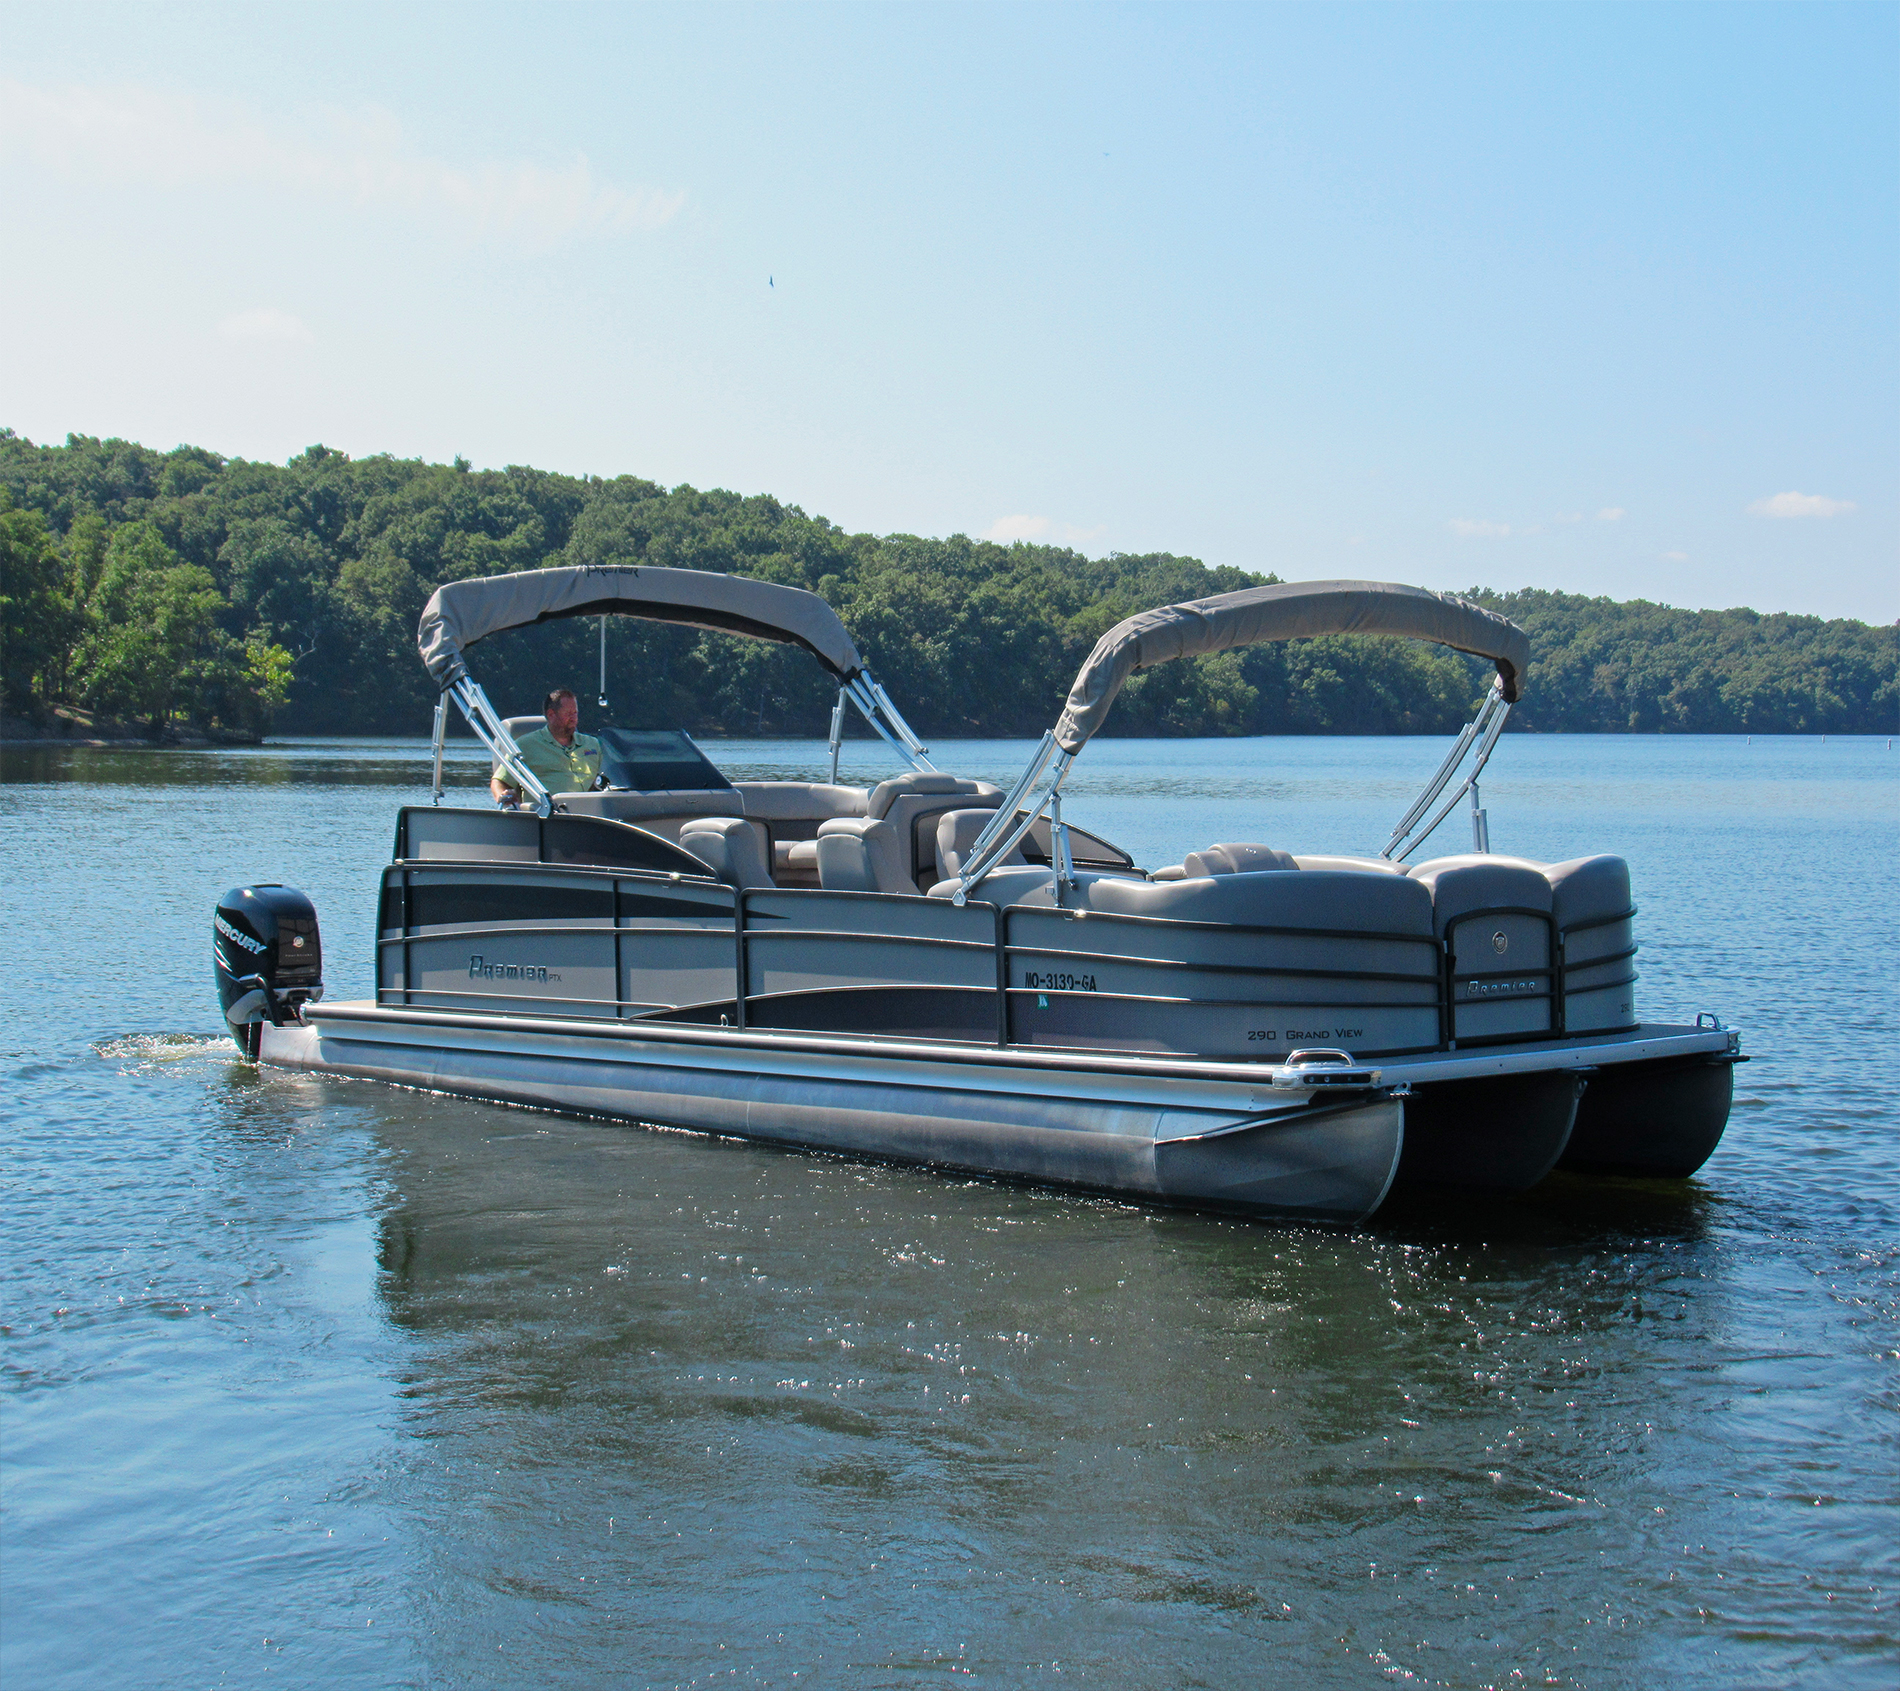 Premier Grand View 290 pontoon boat for sale